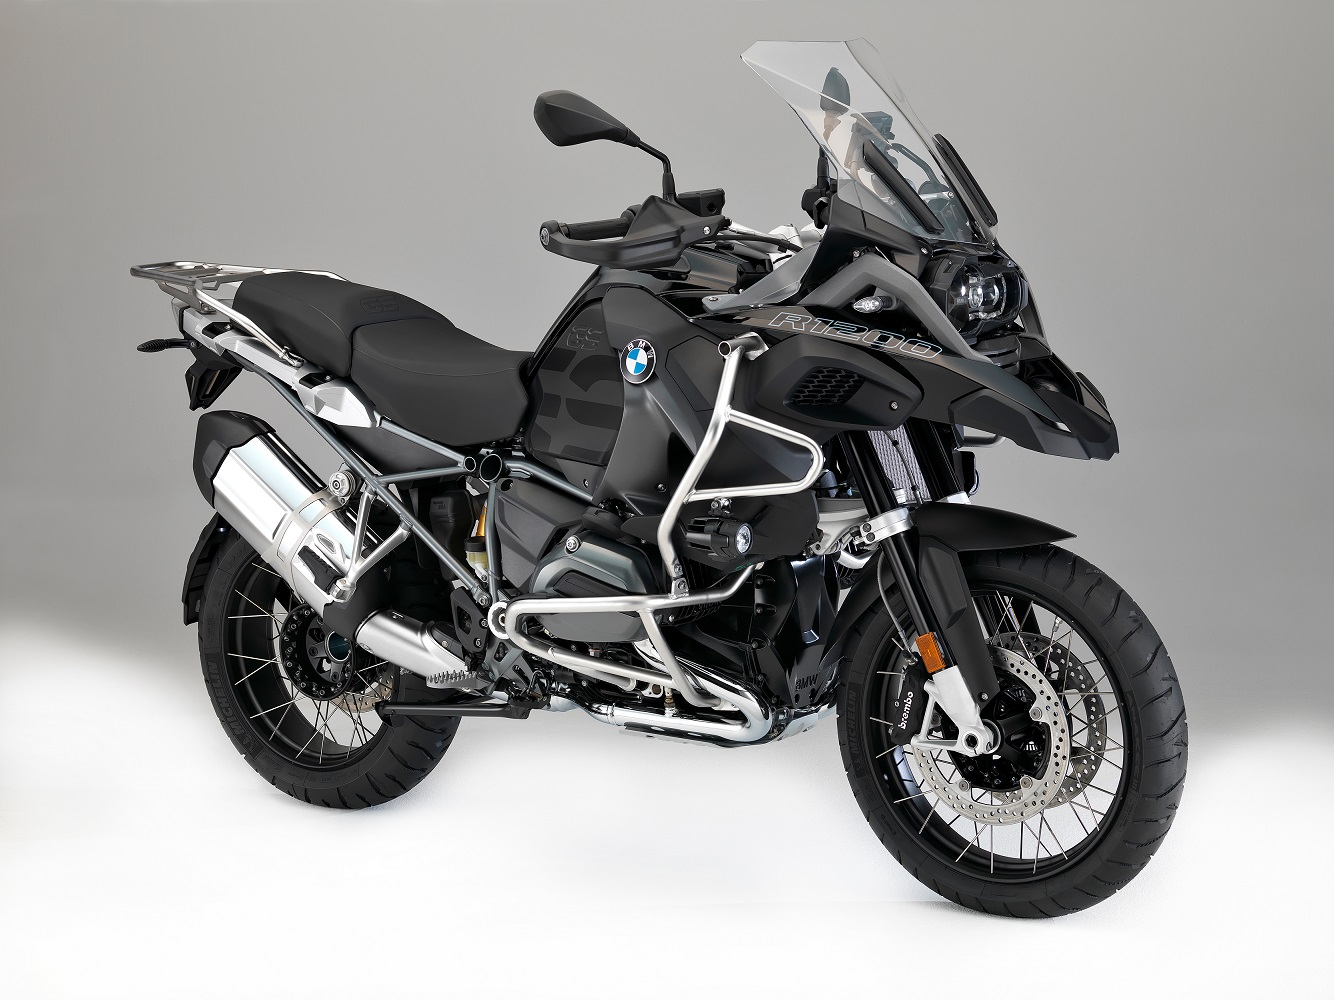 The Triple Black edition of the popular R 1200 GS is sure to attract new fans.